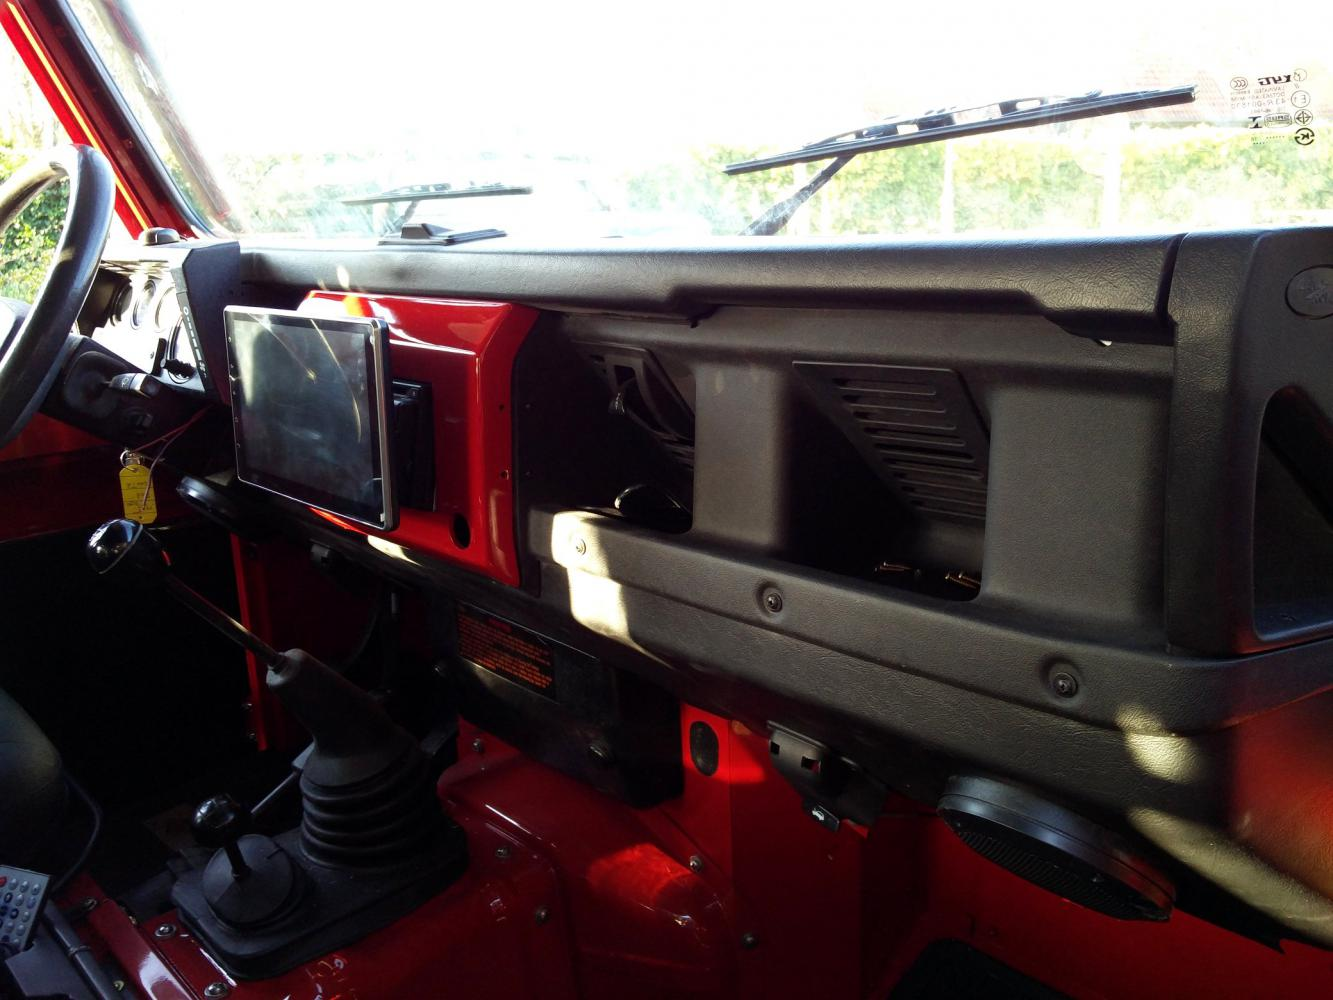 Click image for larger version  Name:1992 LR LHD Defender 90 Red 200 Tdi A ready dash and Android GPS.jpg Views:90 Size:127.0 KB ID:336801